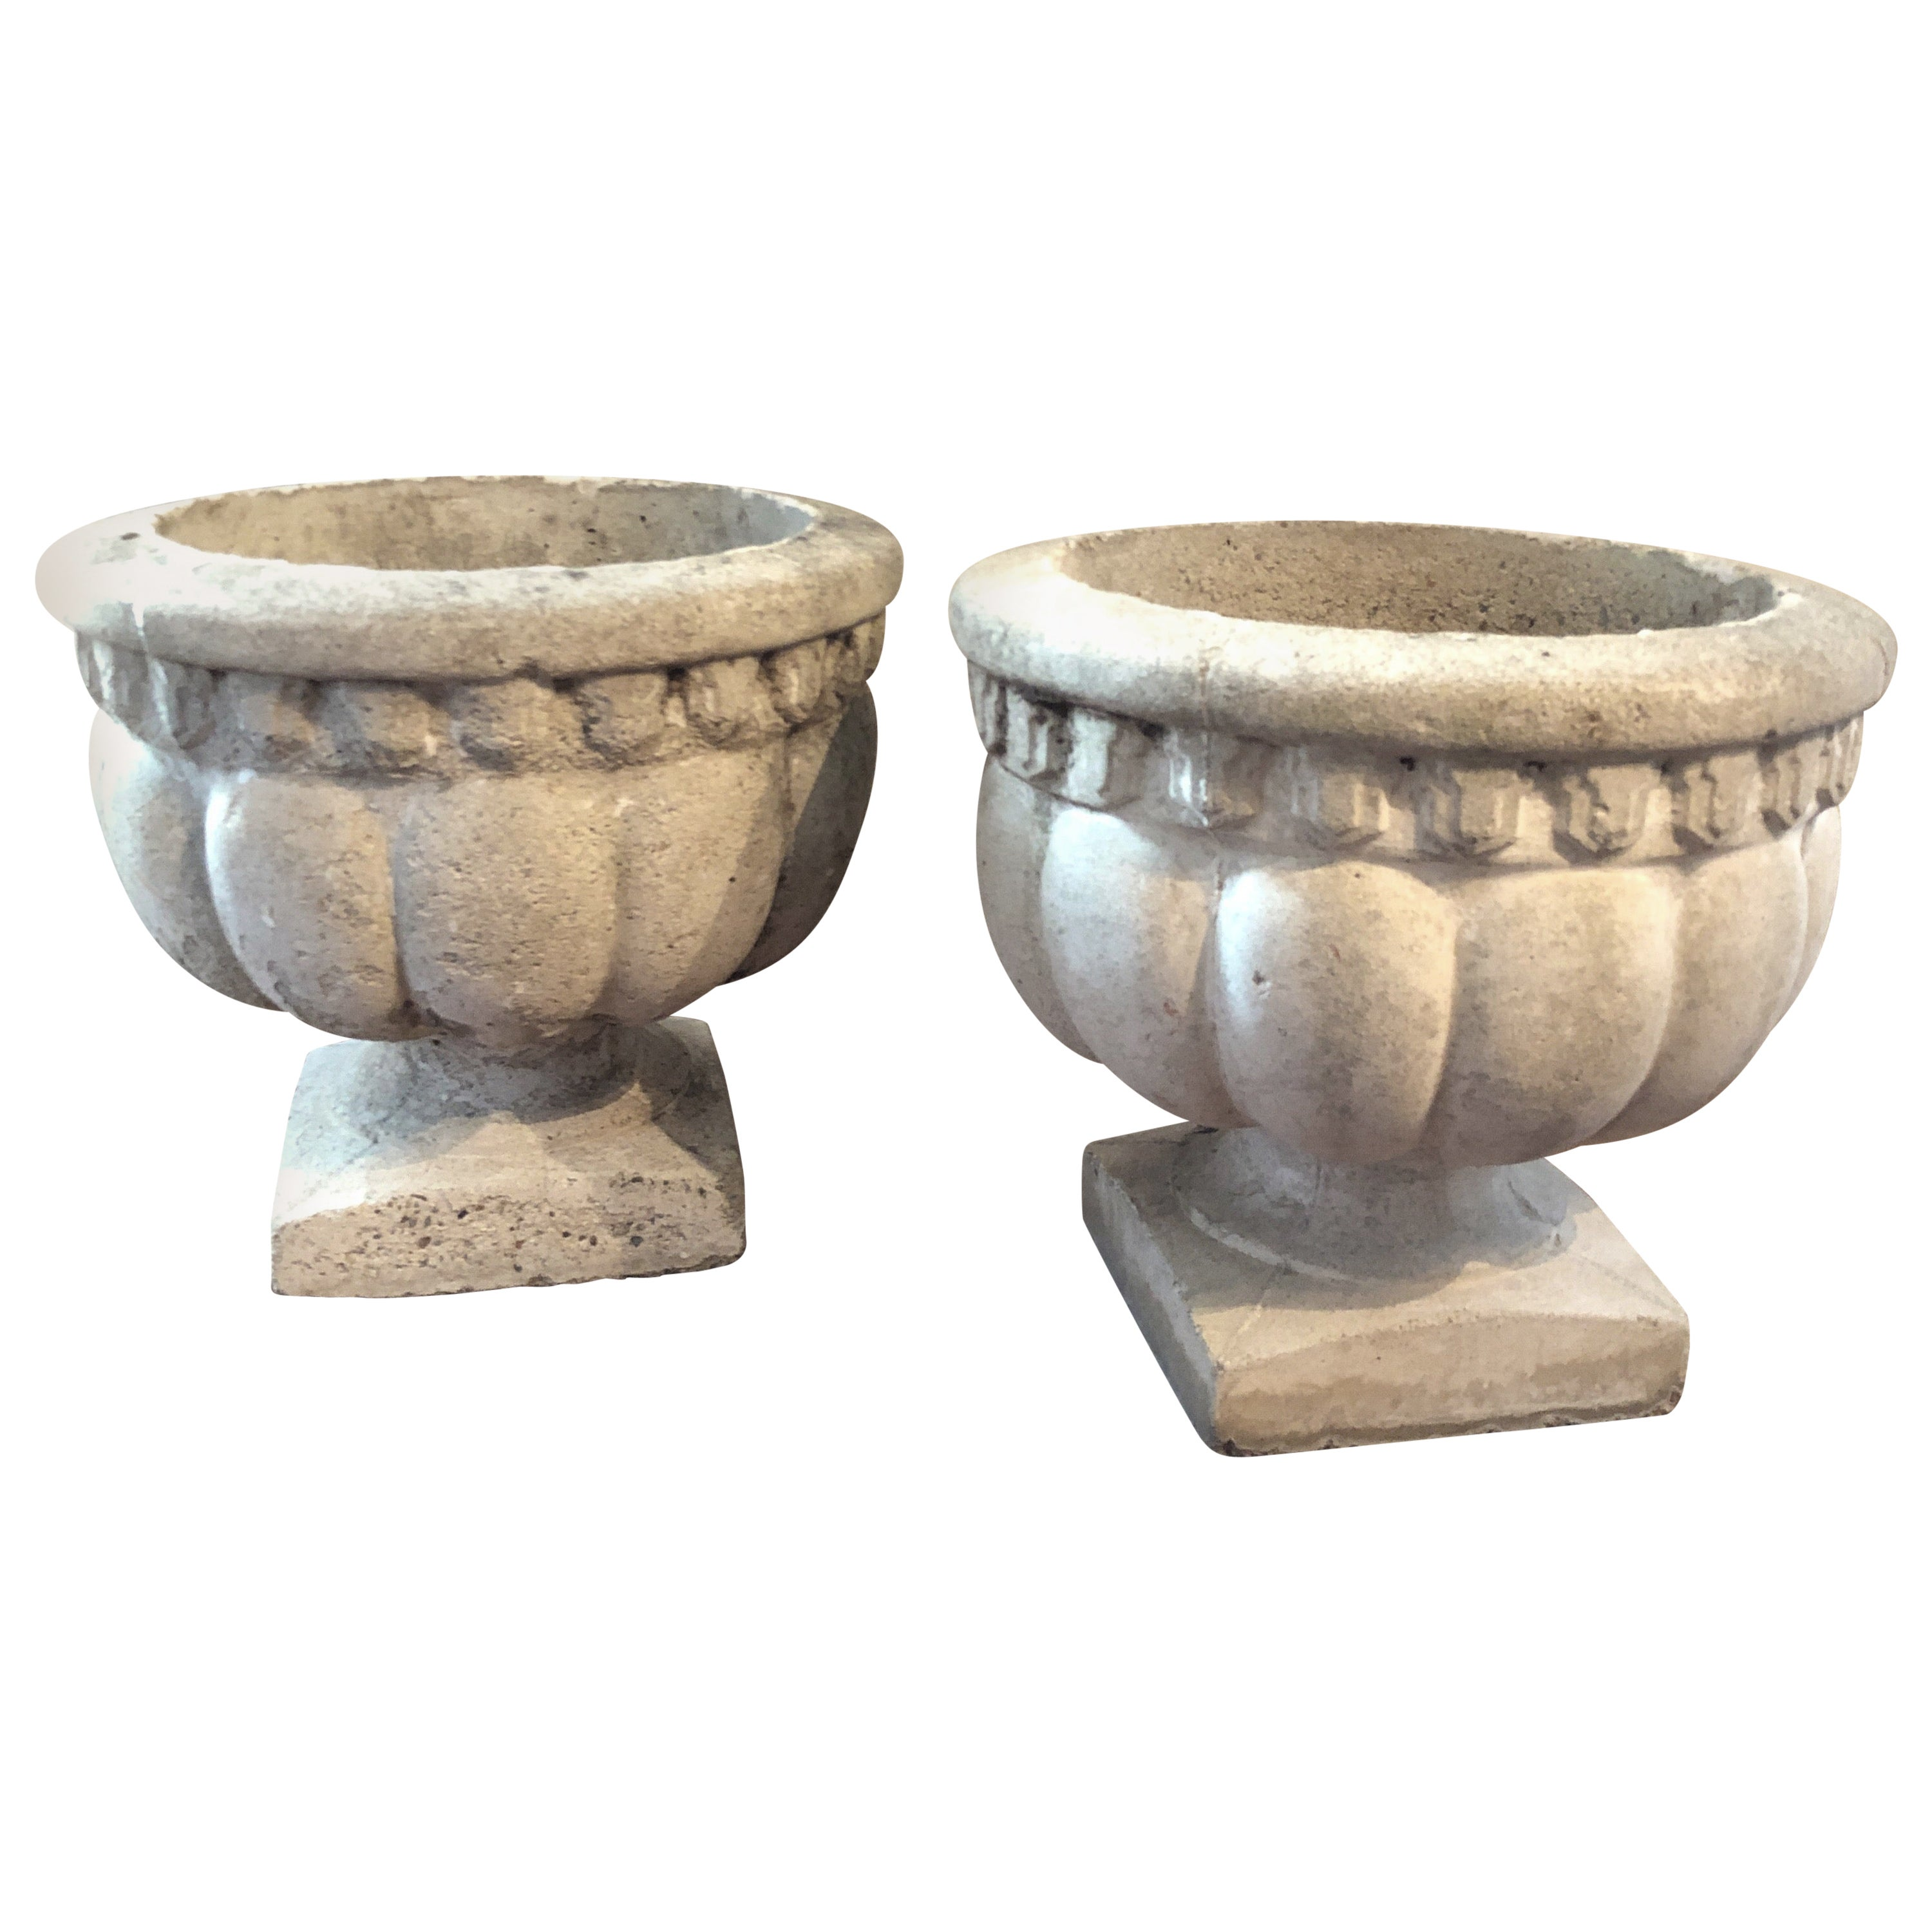 Pair of Mid-20th Century French Cast Stone Garden Urns, Planters, Jardinières